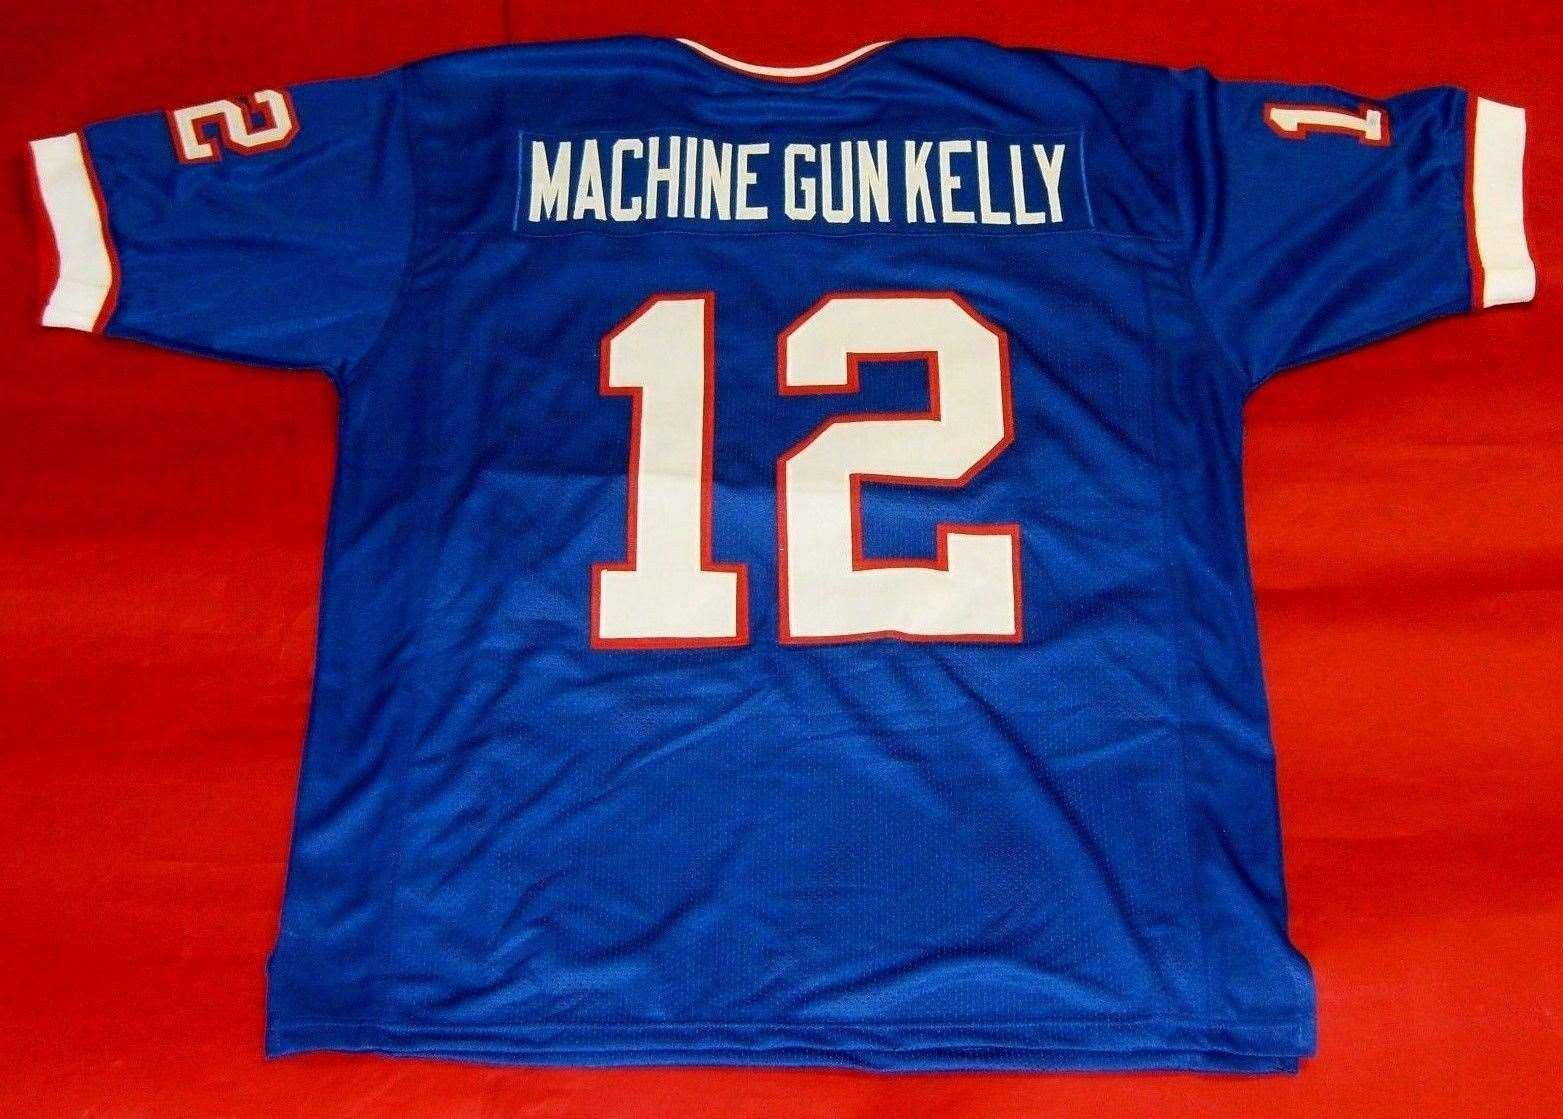 Cheap retro #12 JIM KELLY CUSTOM MITCHELL & NESS Jersey MACHINE GUN KELLY bule Mens Stitching Top S-5XL,6XL Football Jerseys Running